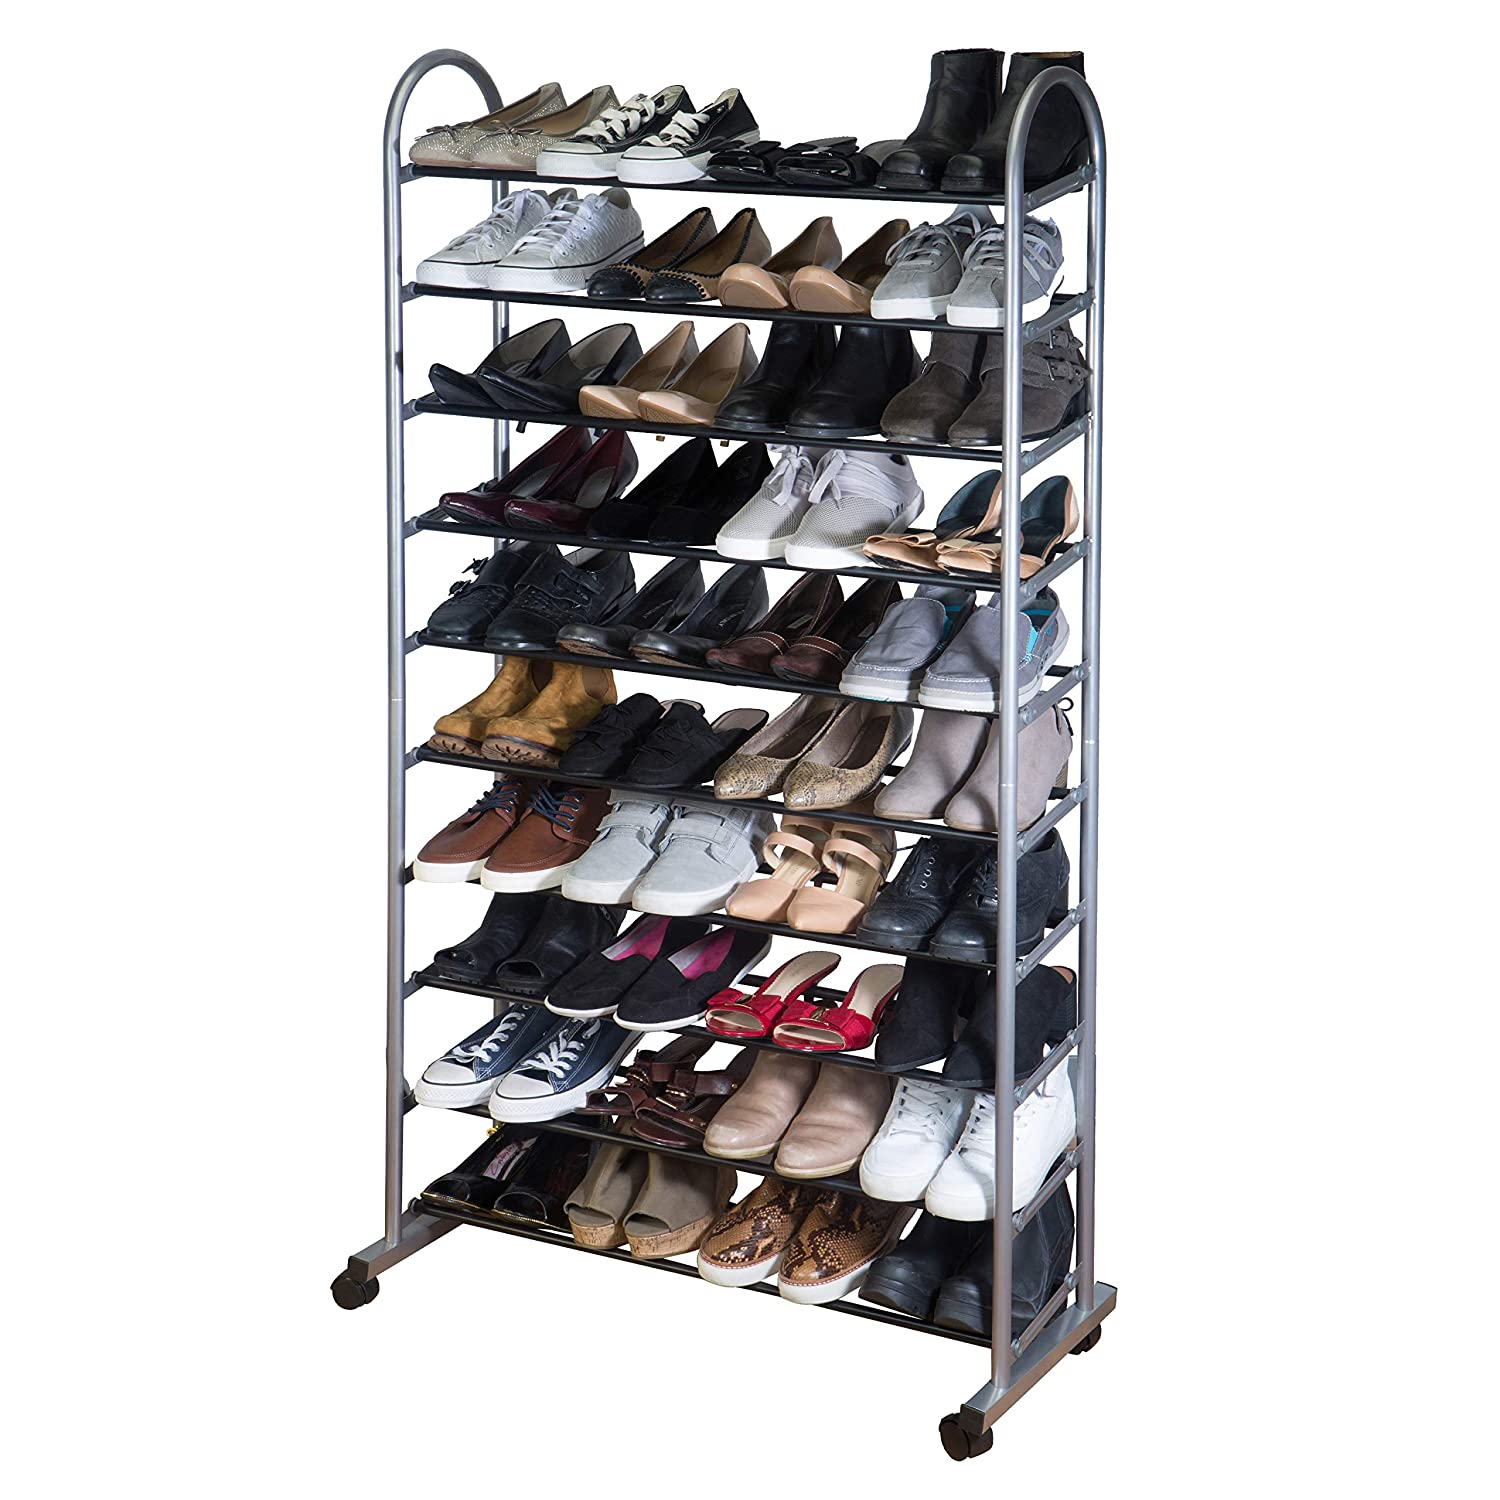 Simplify 10 Tier Mobile Rack on Wheels, 40 Pairs, Good for Sneakers, Heels, Boots, Shoes, Grey